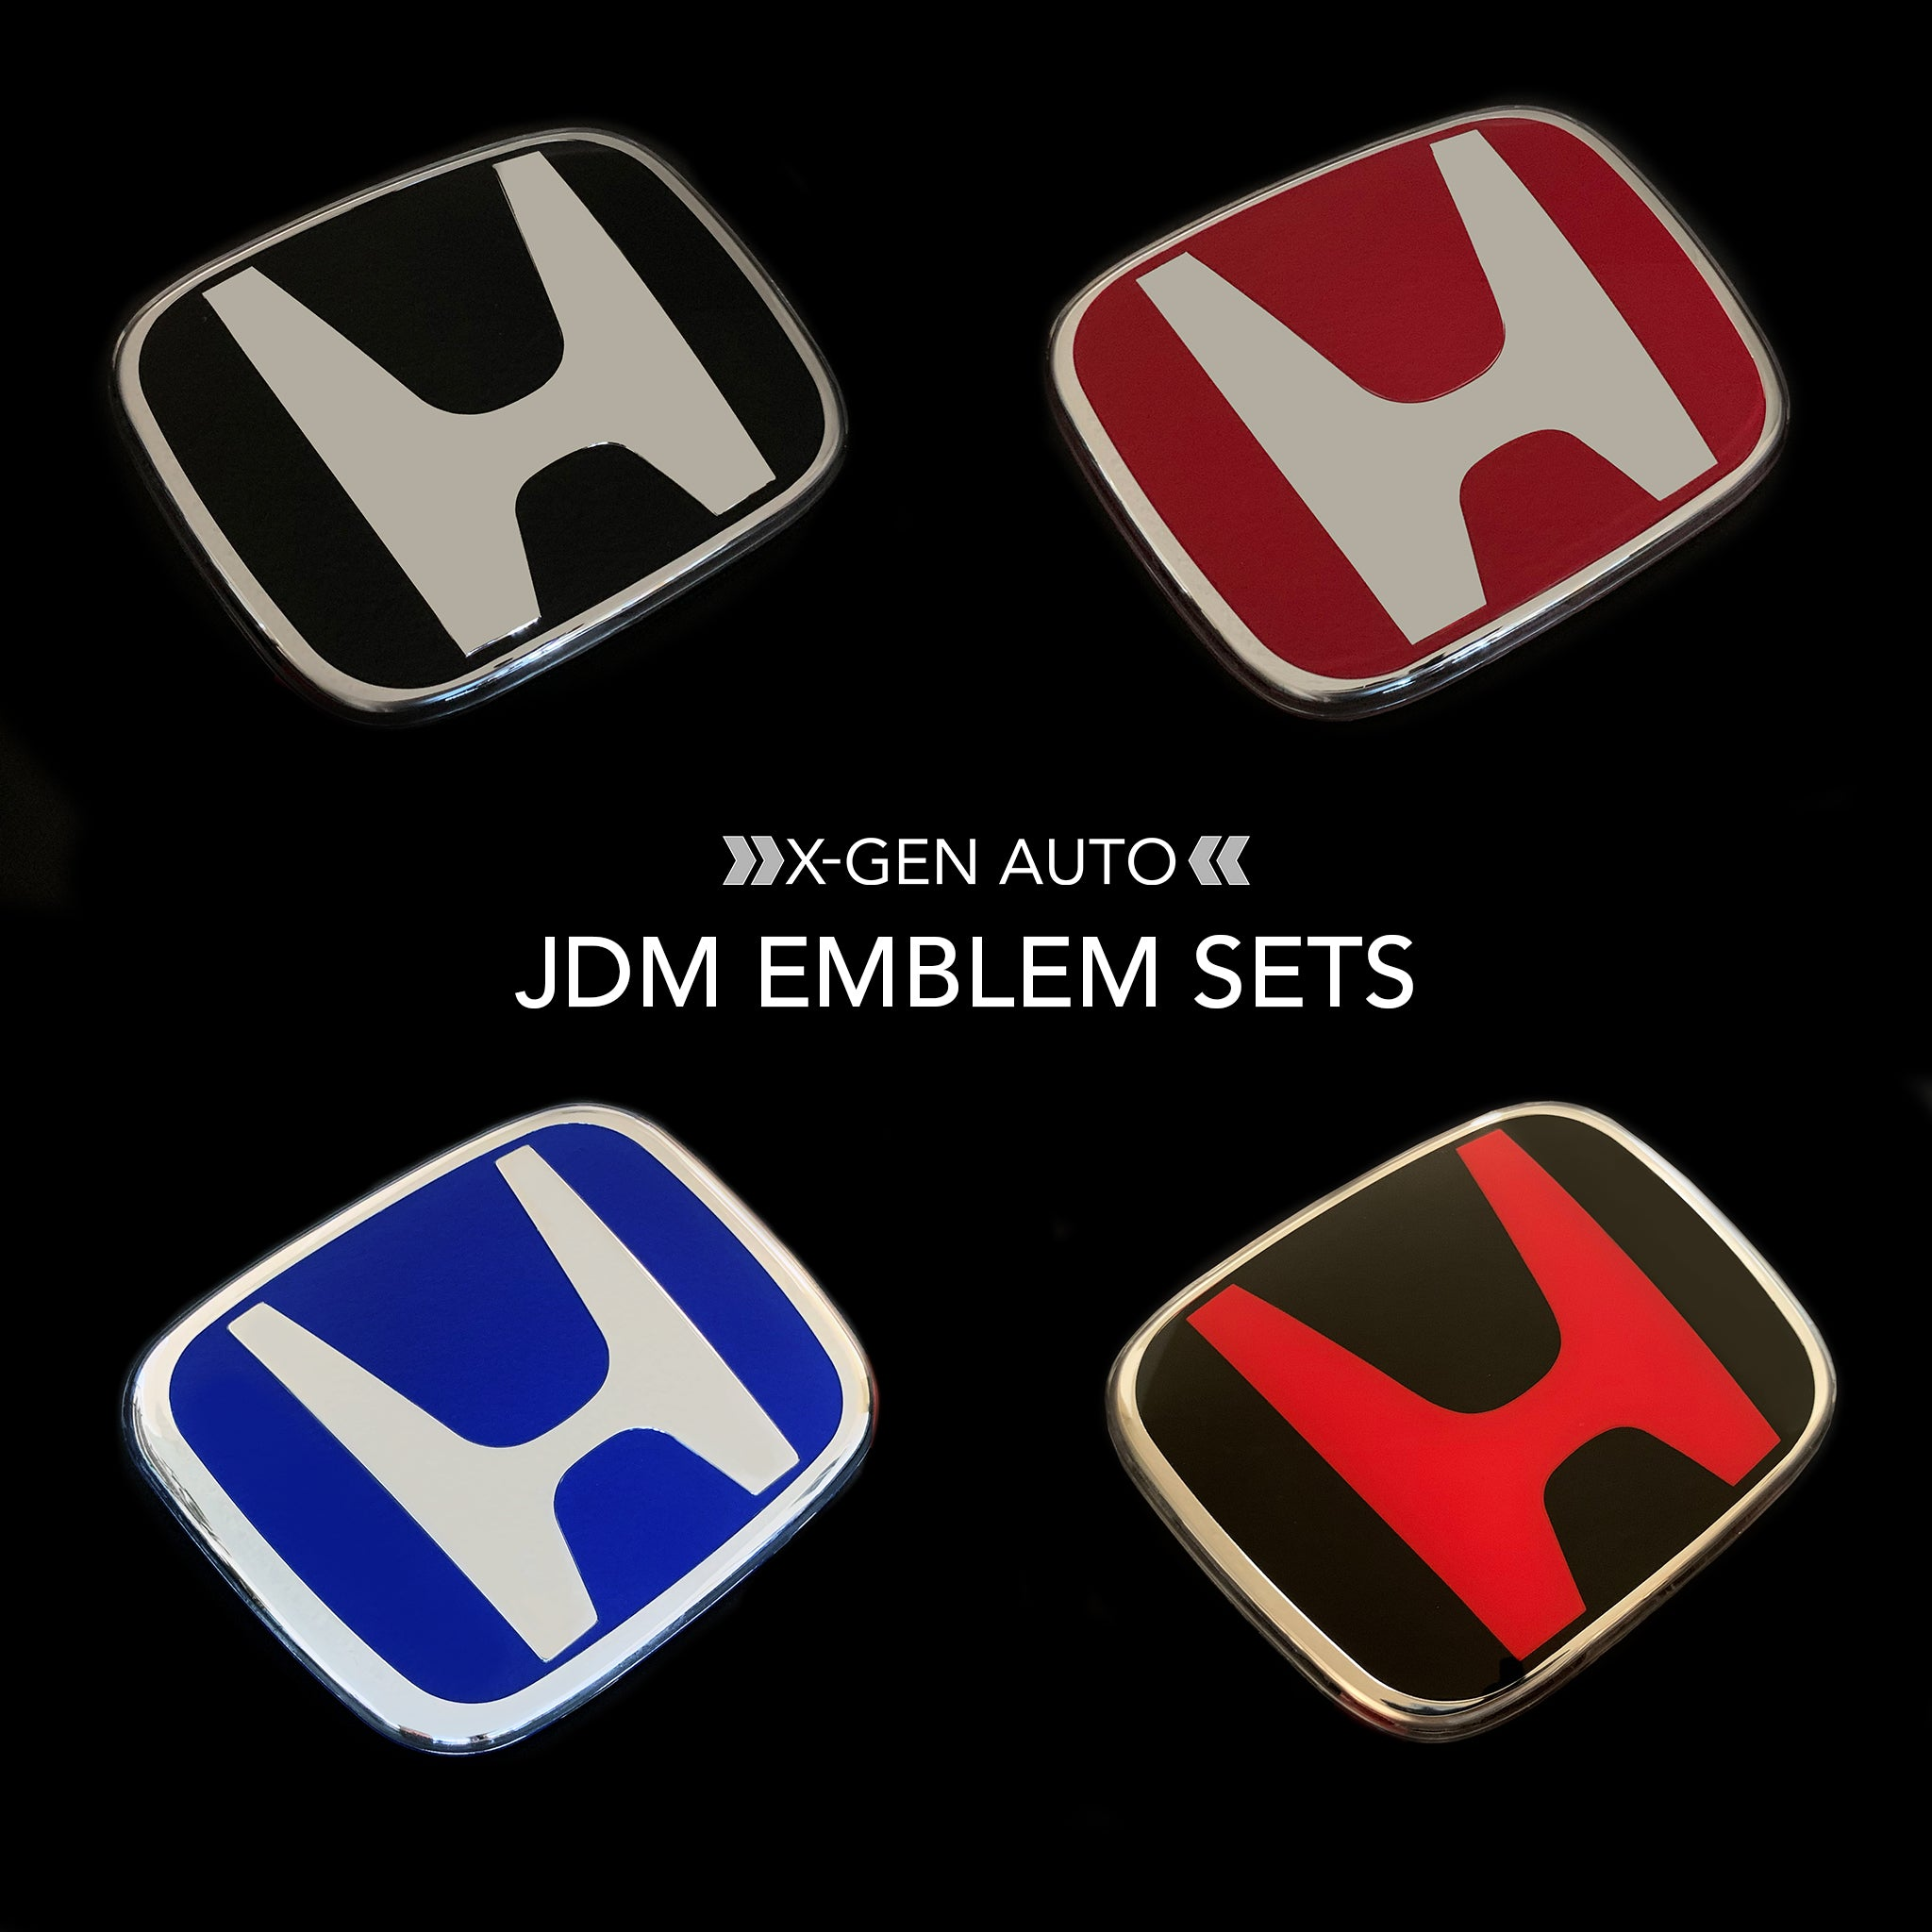 [CIVIC X] JDM EMBLEM SETS